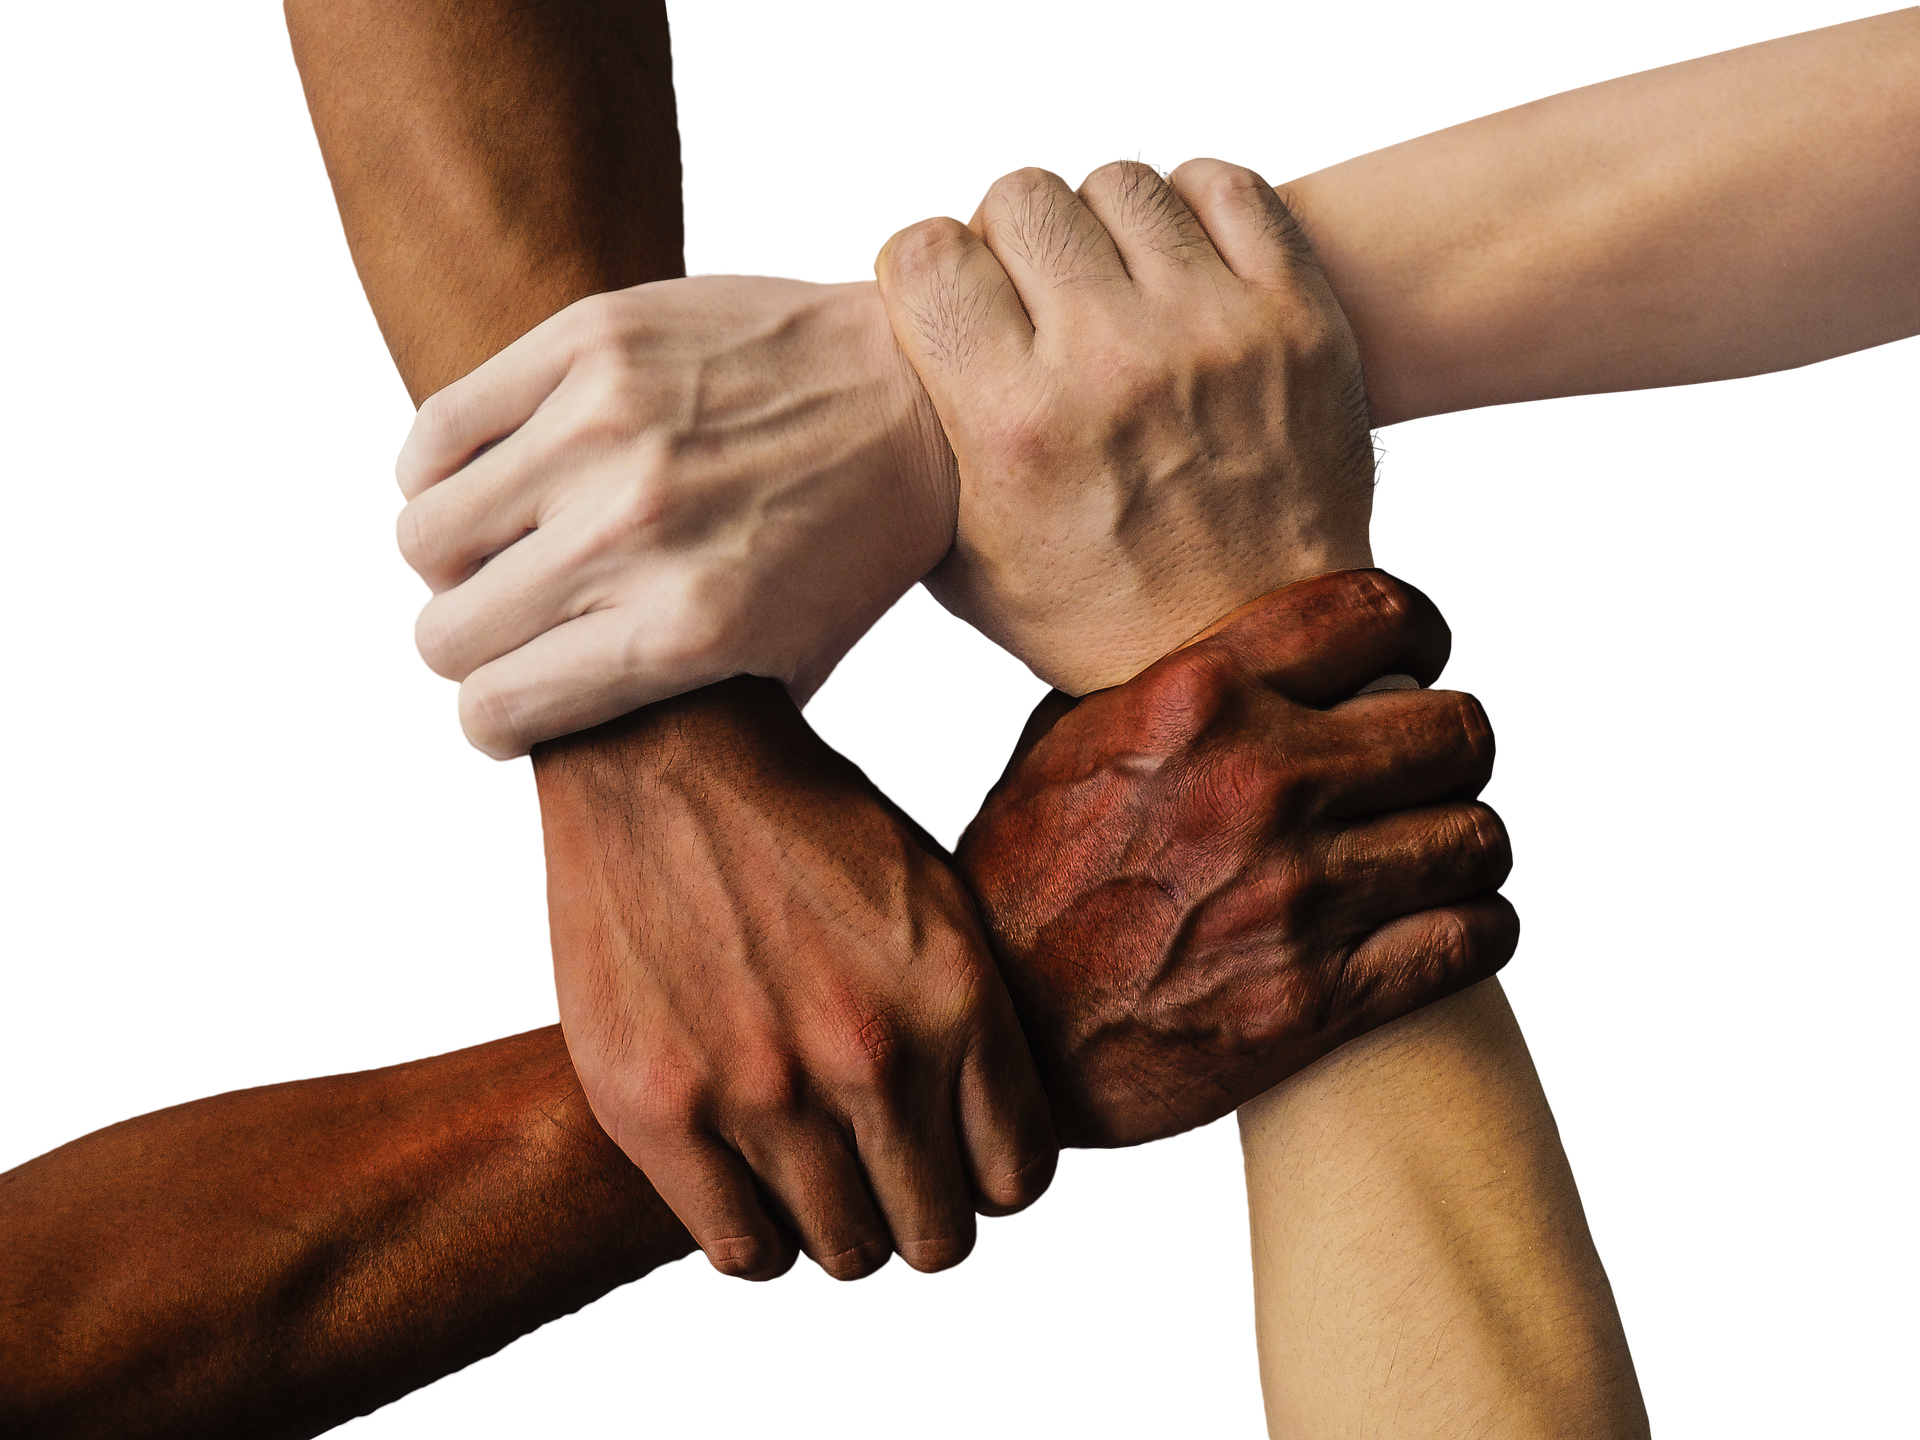 text: brown, pale, black, white skin colored hands grabbing the wrists, joining to each other